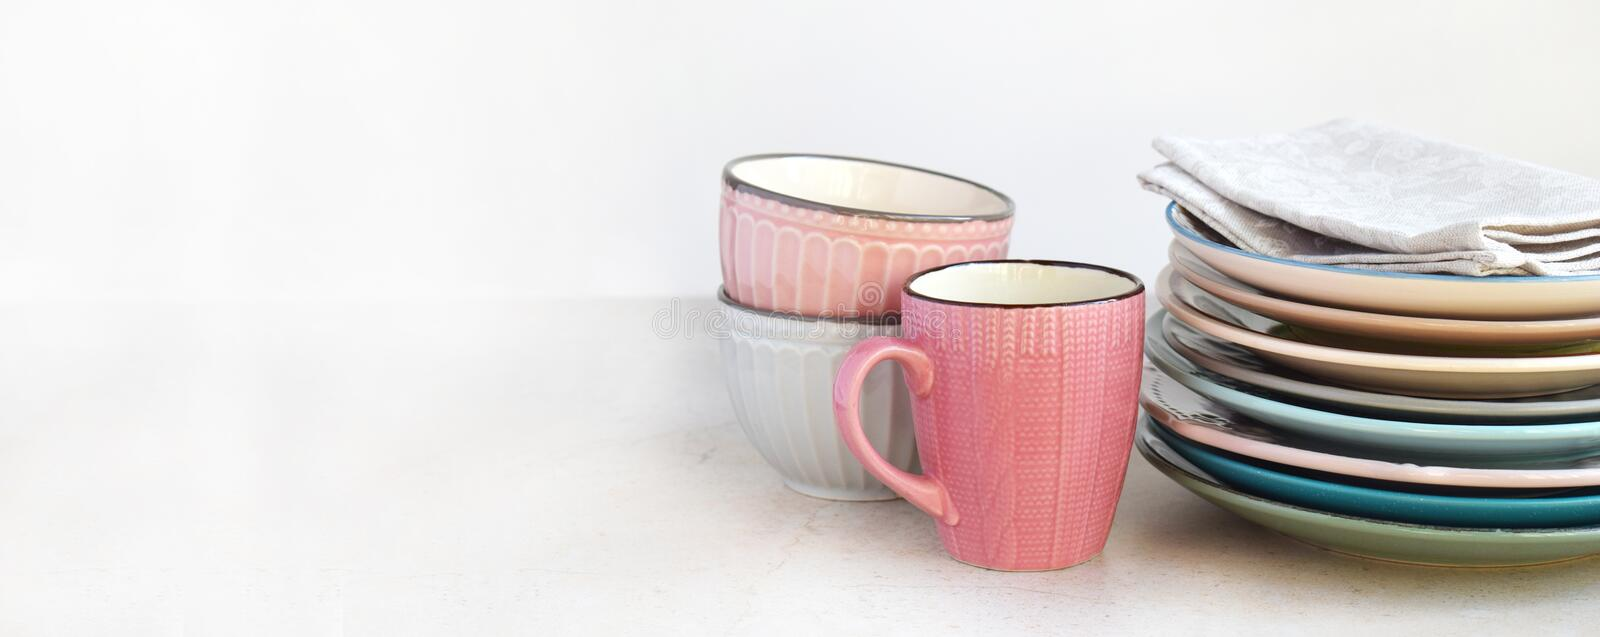 Multicolored empty ceramic plates, mugs and bowls on a marble background. Table setting banner. Shabby chic or retro style. Copy stock photography